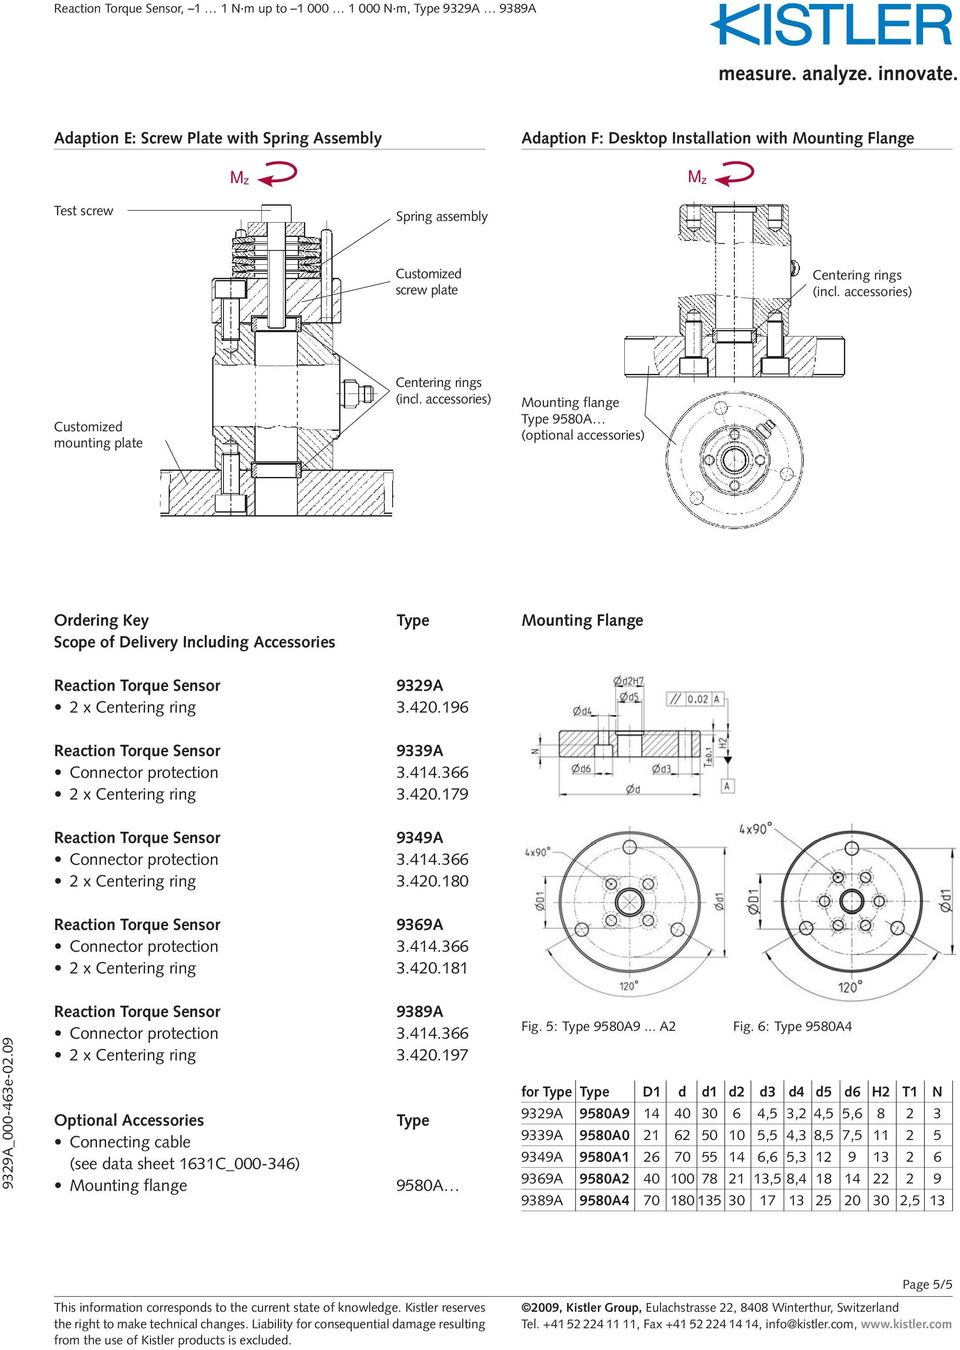 420.180 9369A 2 x Centering ring 3.420.181 9389A 2 x Centering ring 3.420.197 Optional Accessories Connecting cable (see data sheet 1631C_000-346) Mounting flange Type 9580A Fig. 5: Type 9580A9.